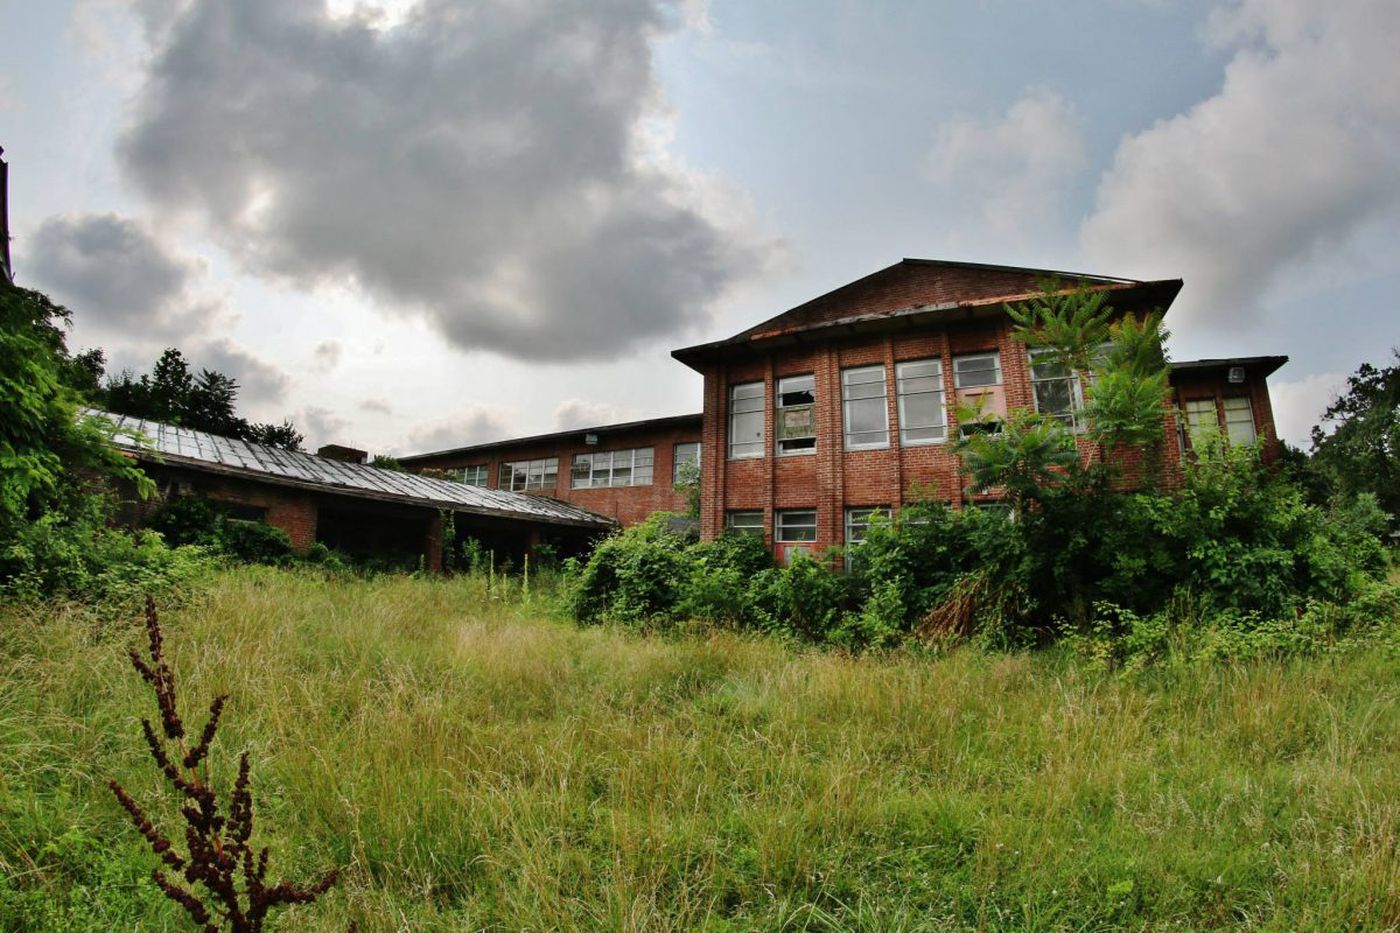 Psychiatric hospital with a controversial past to remain standing after a Chester County town denies developer